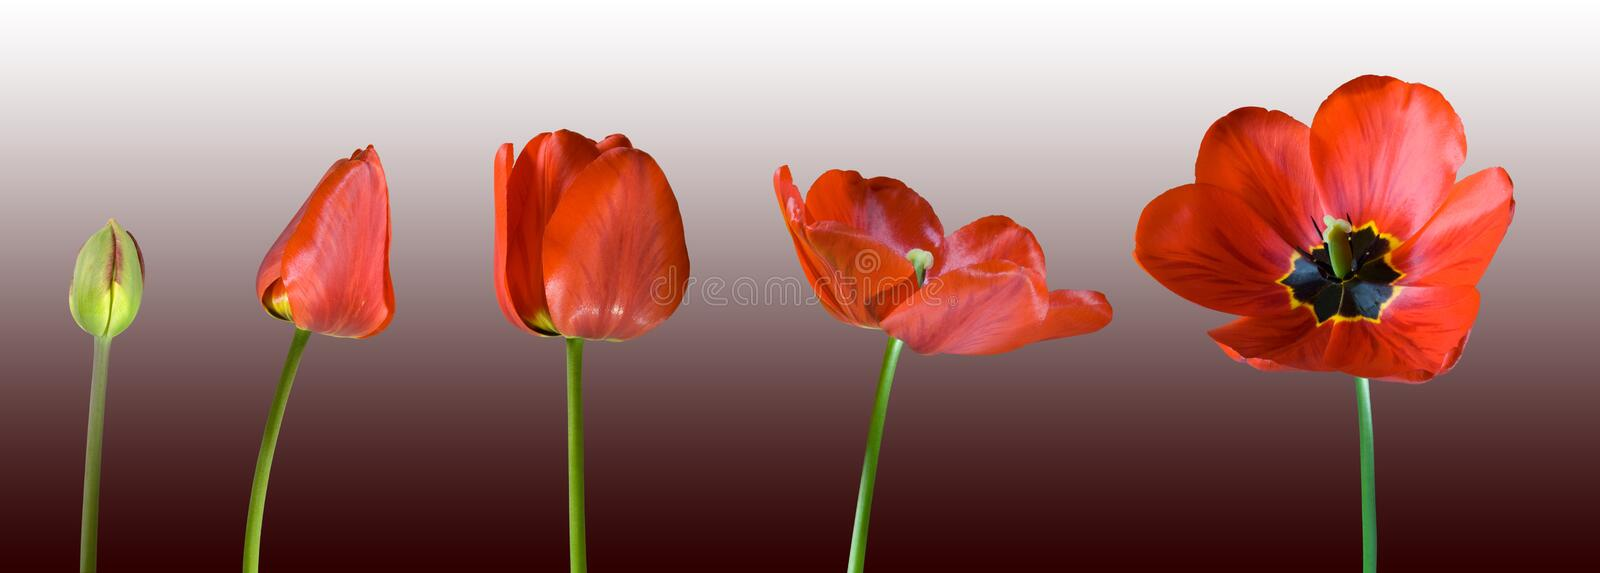 Growing red tulip stock photos